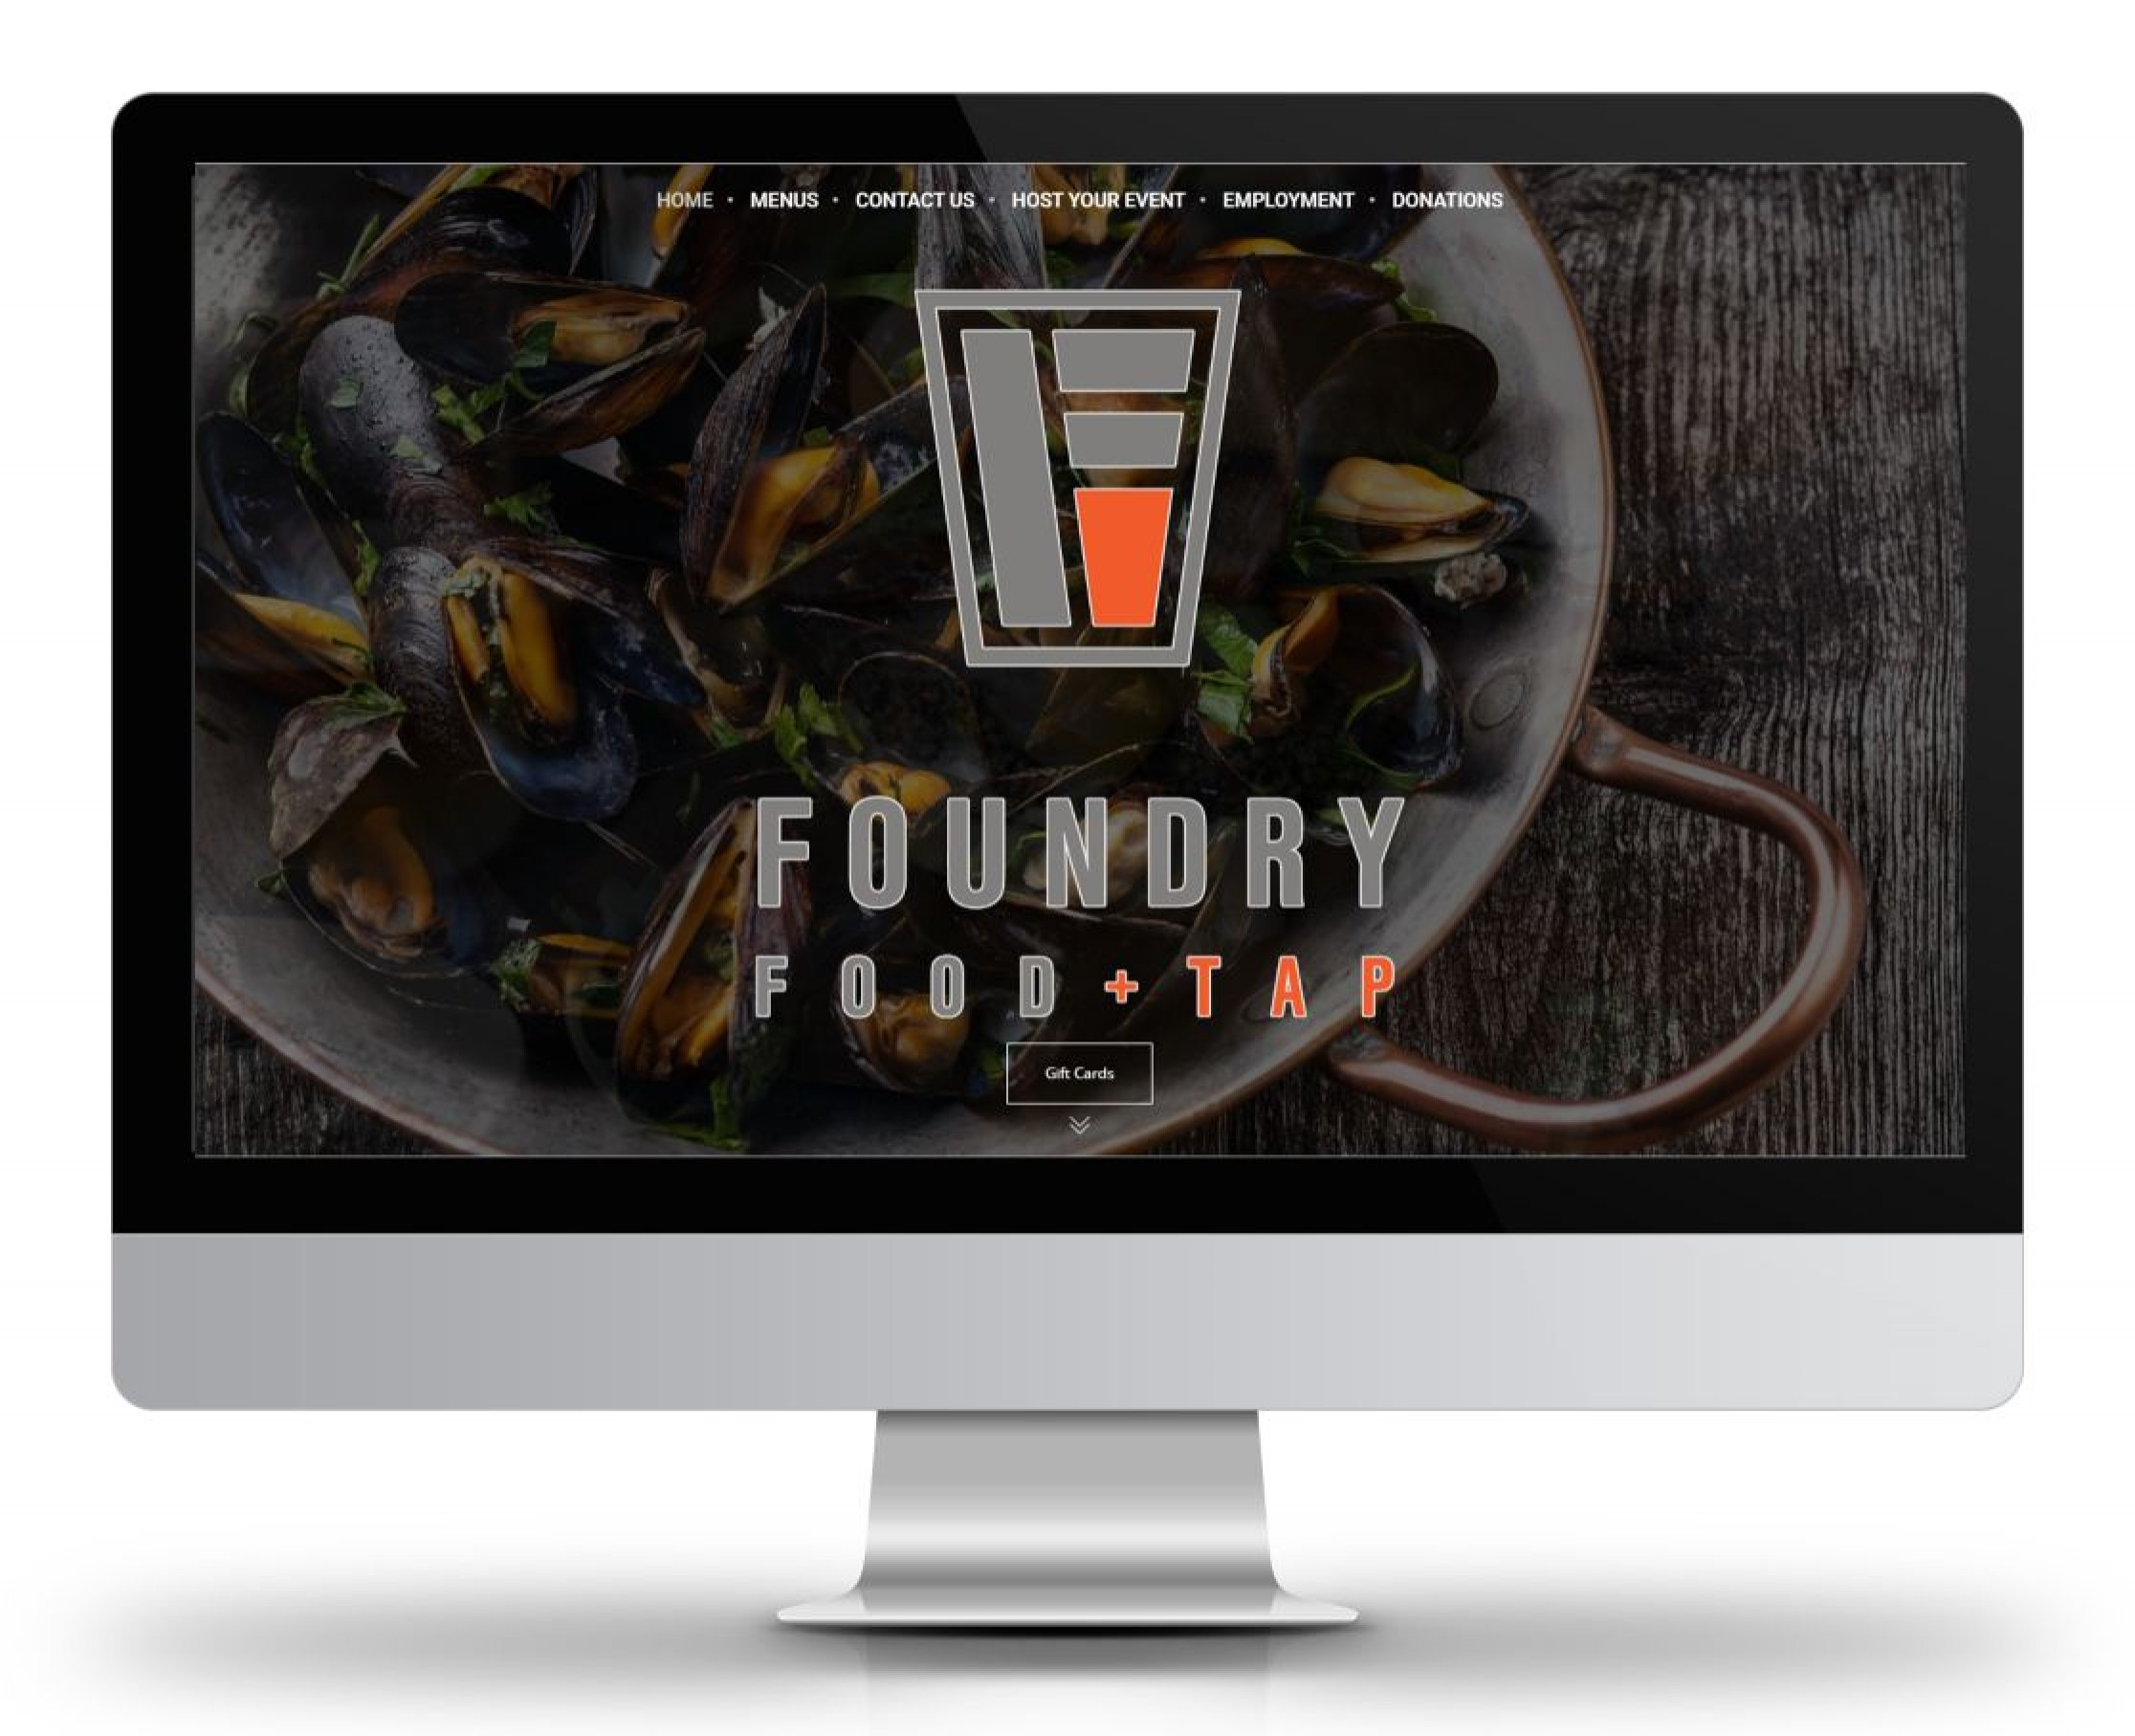 The Foundry Food + Tap